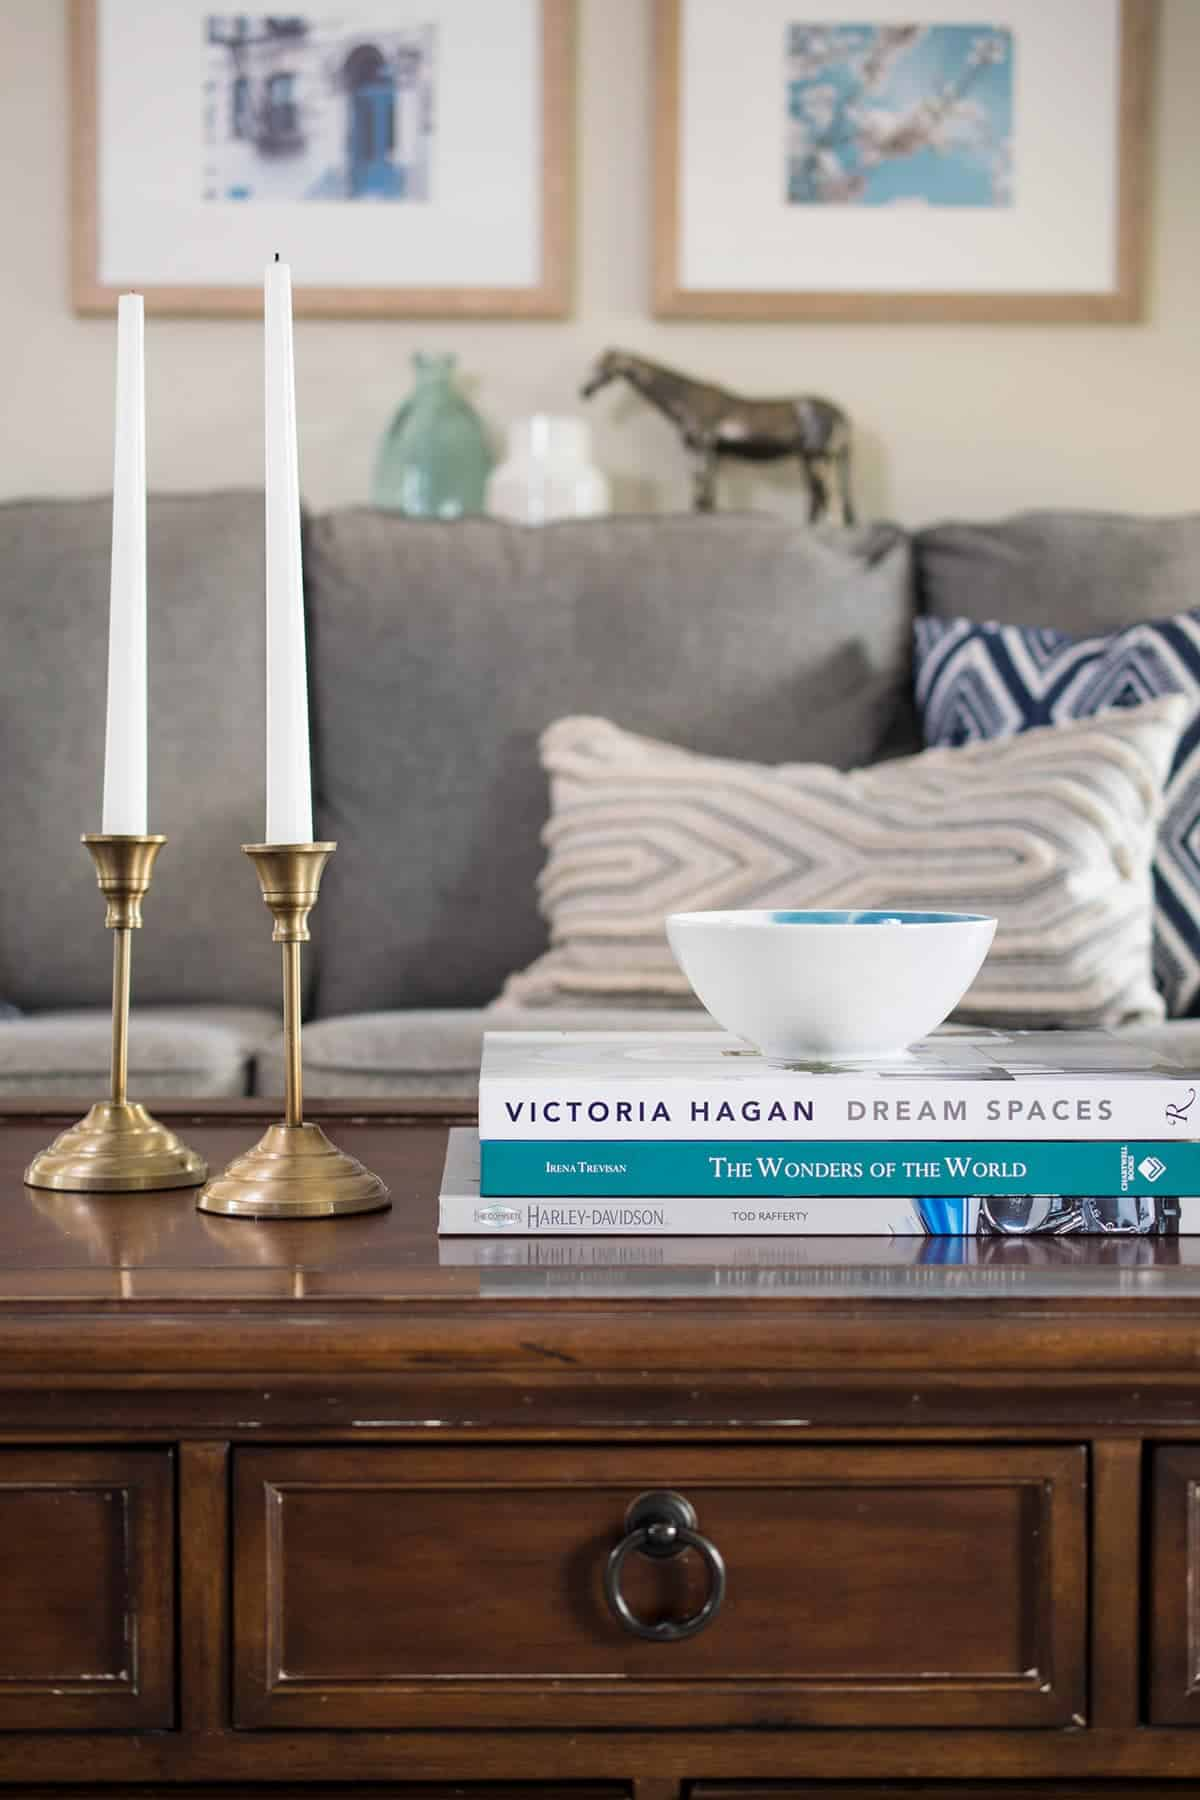 Coffee table styling close up includes books, brass candle sticks and decorative bowl.